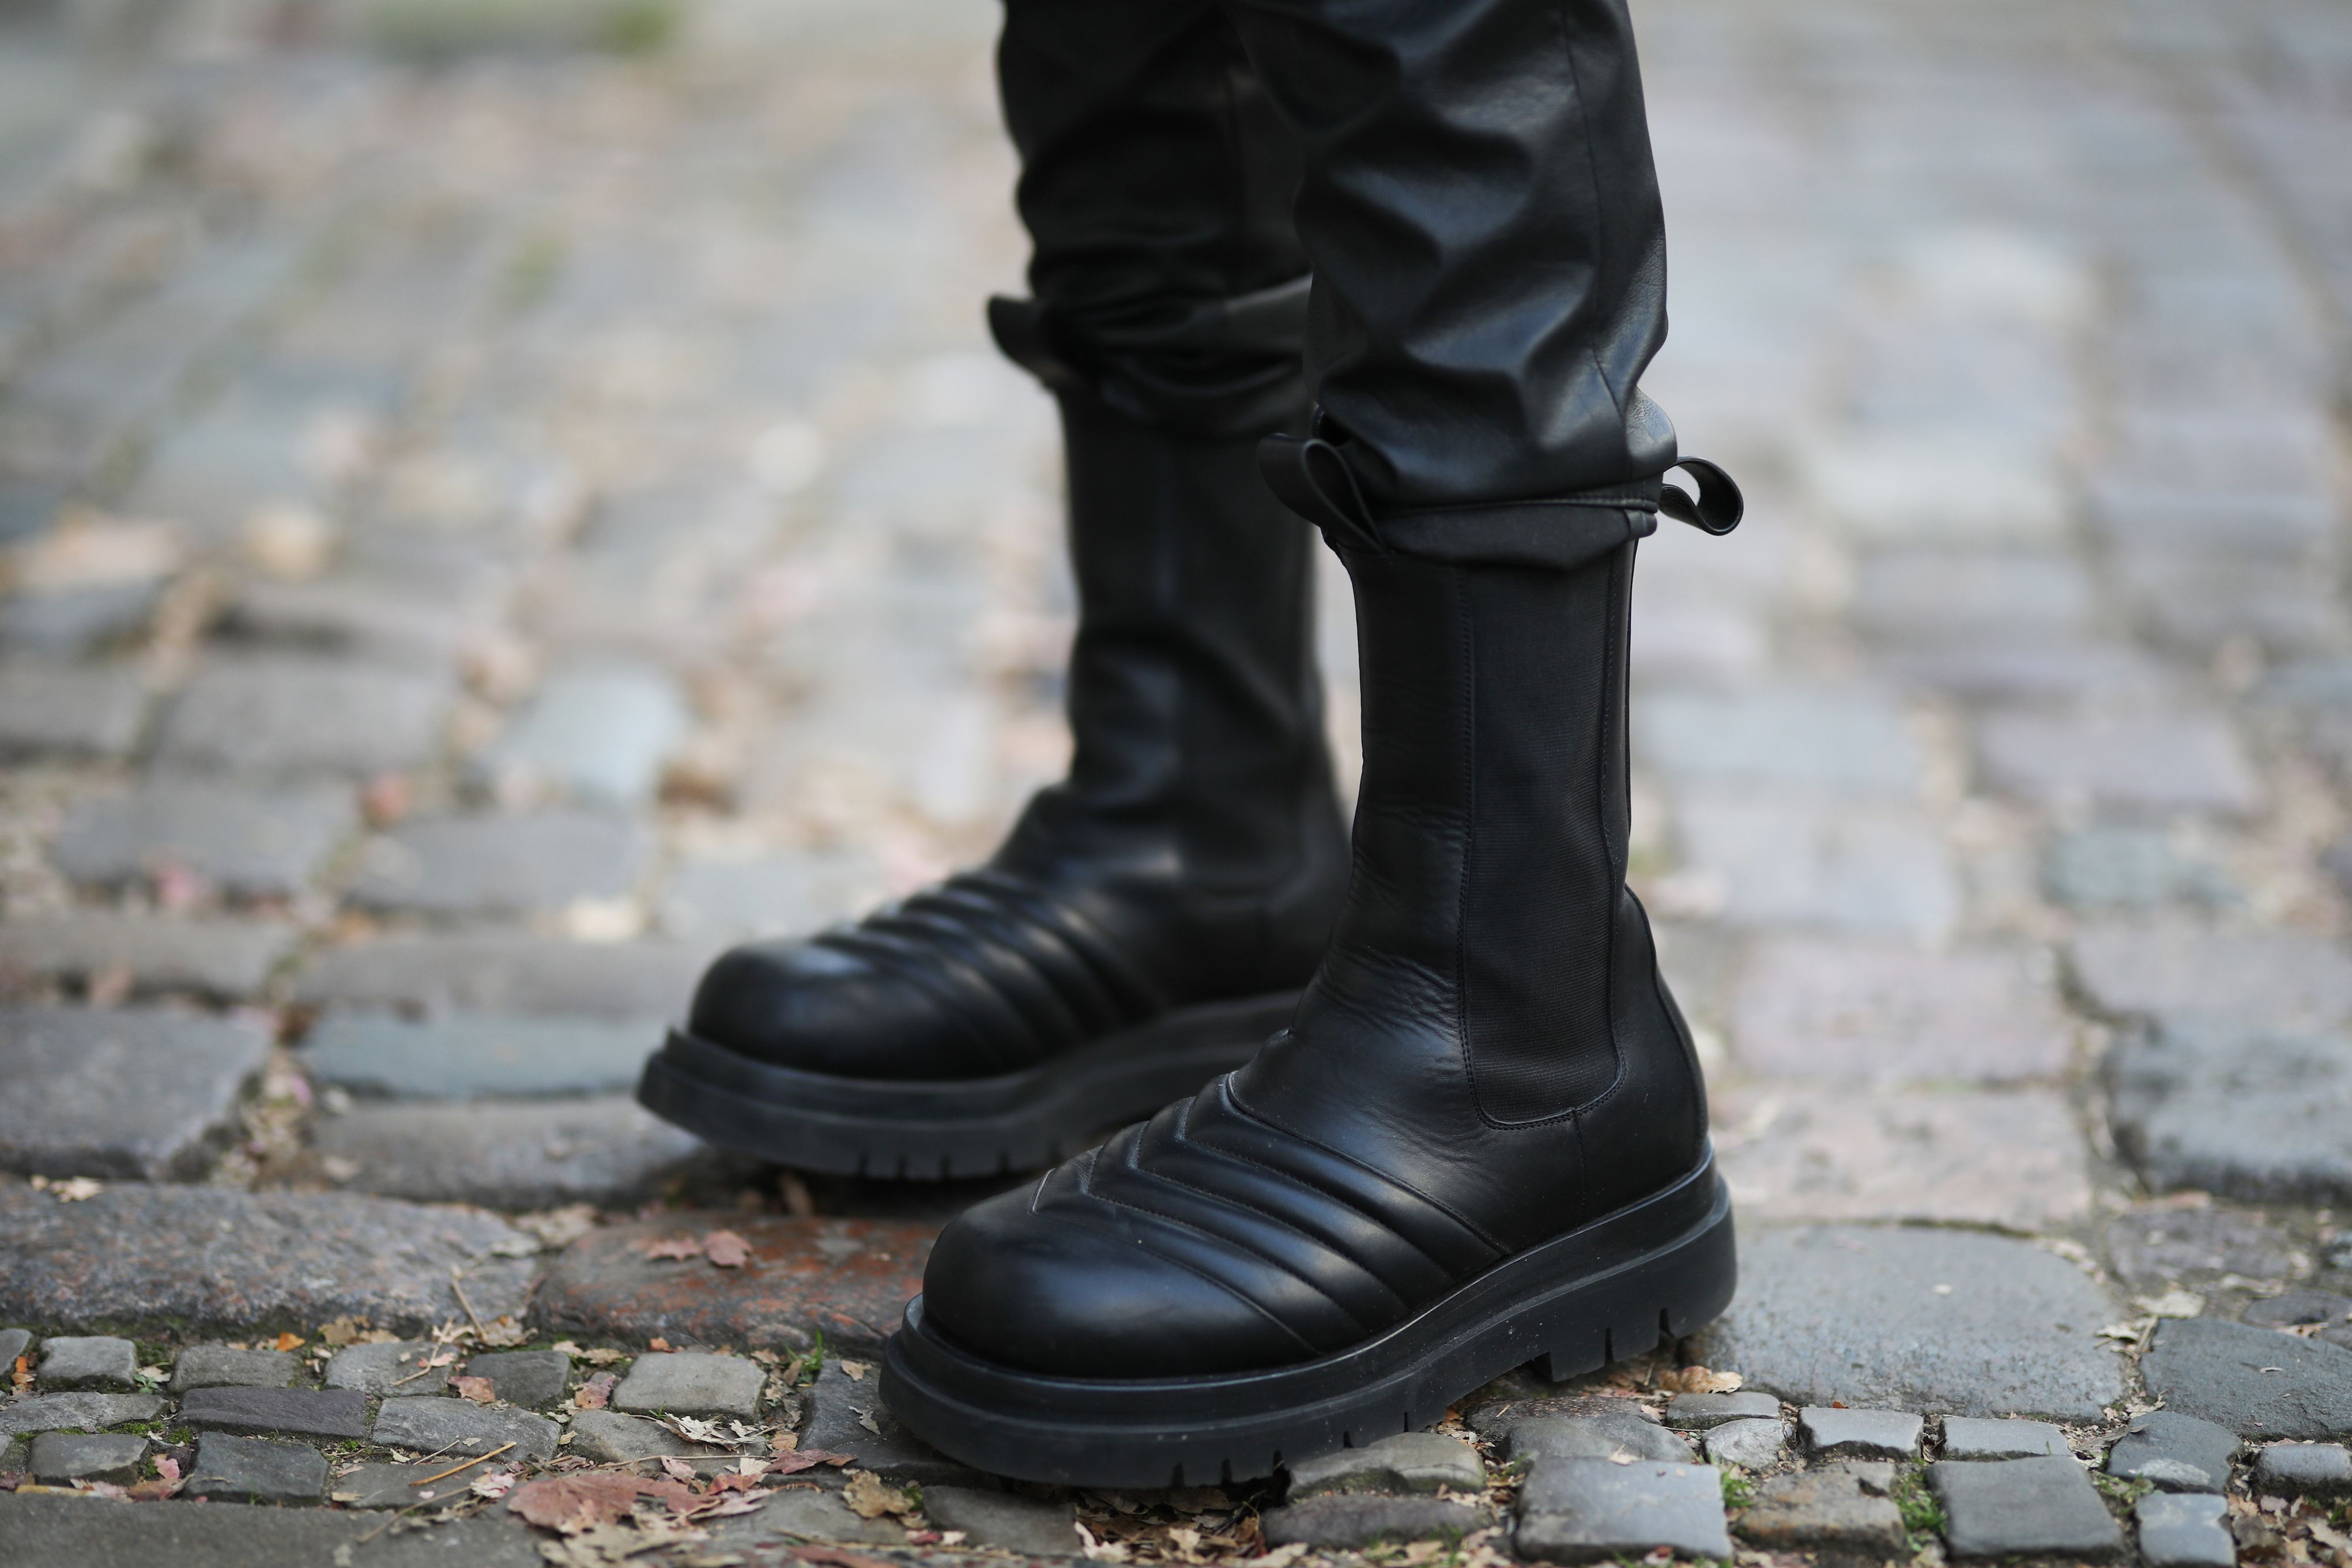 12 On-Sale Designer Combat Boots That Are Better Than Docs